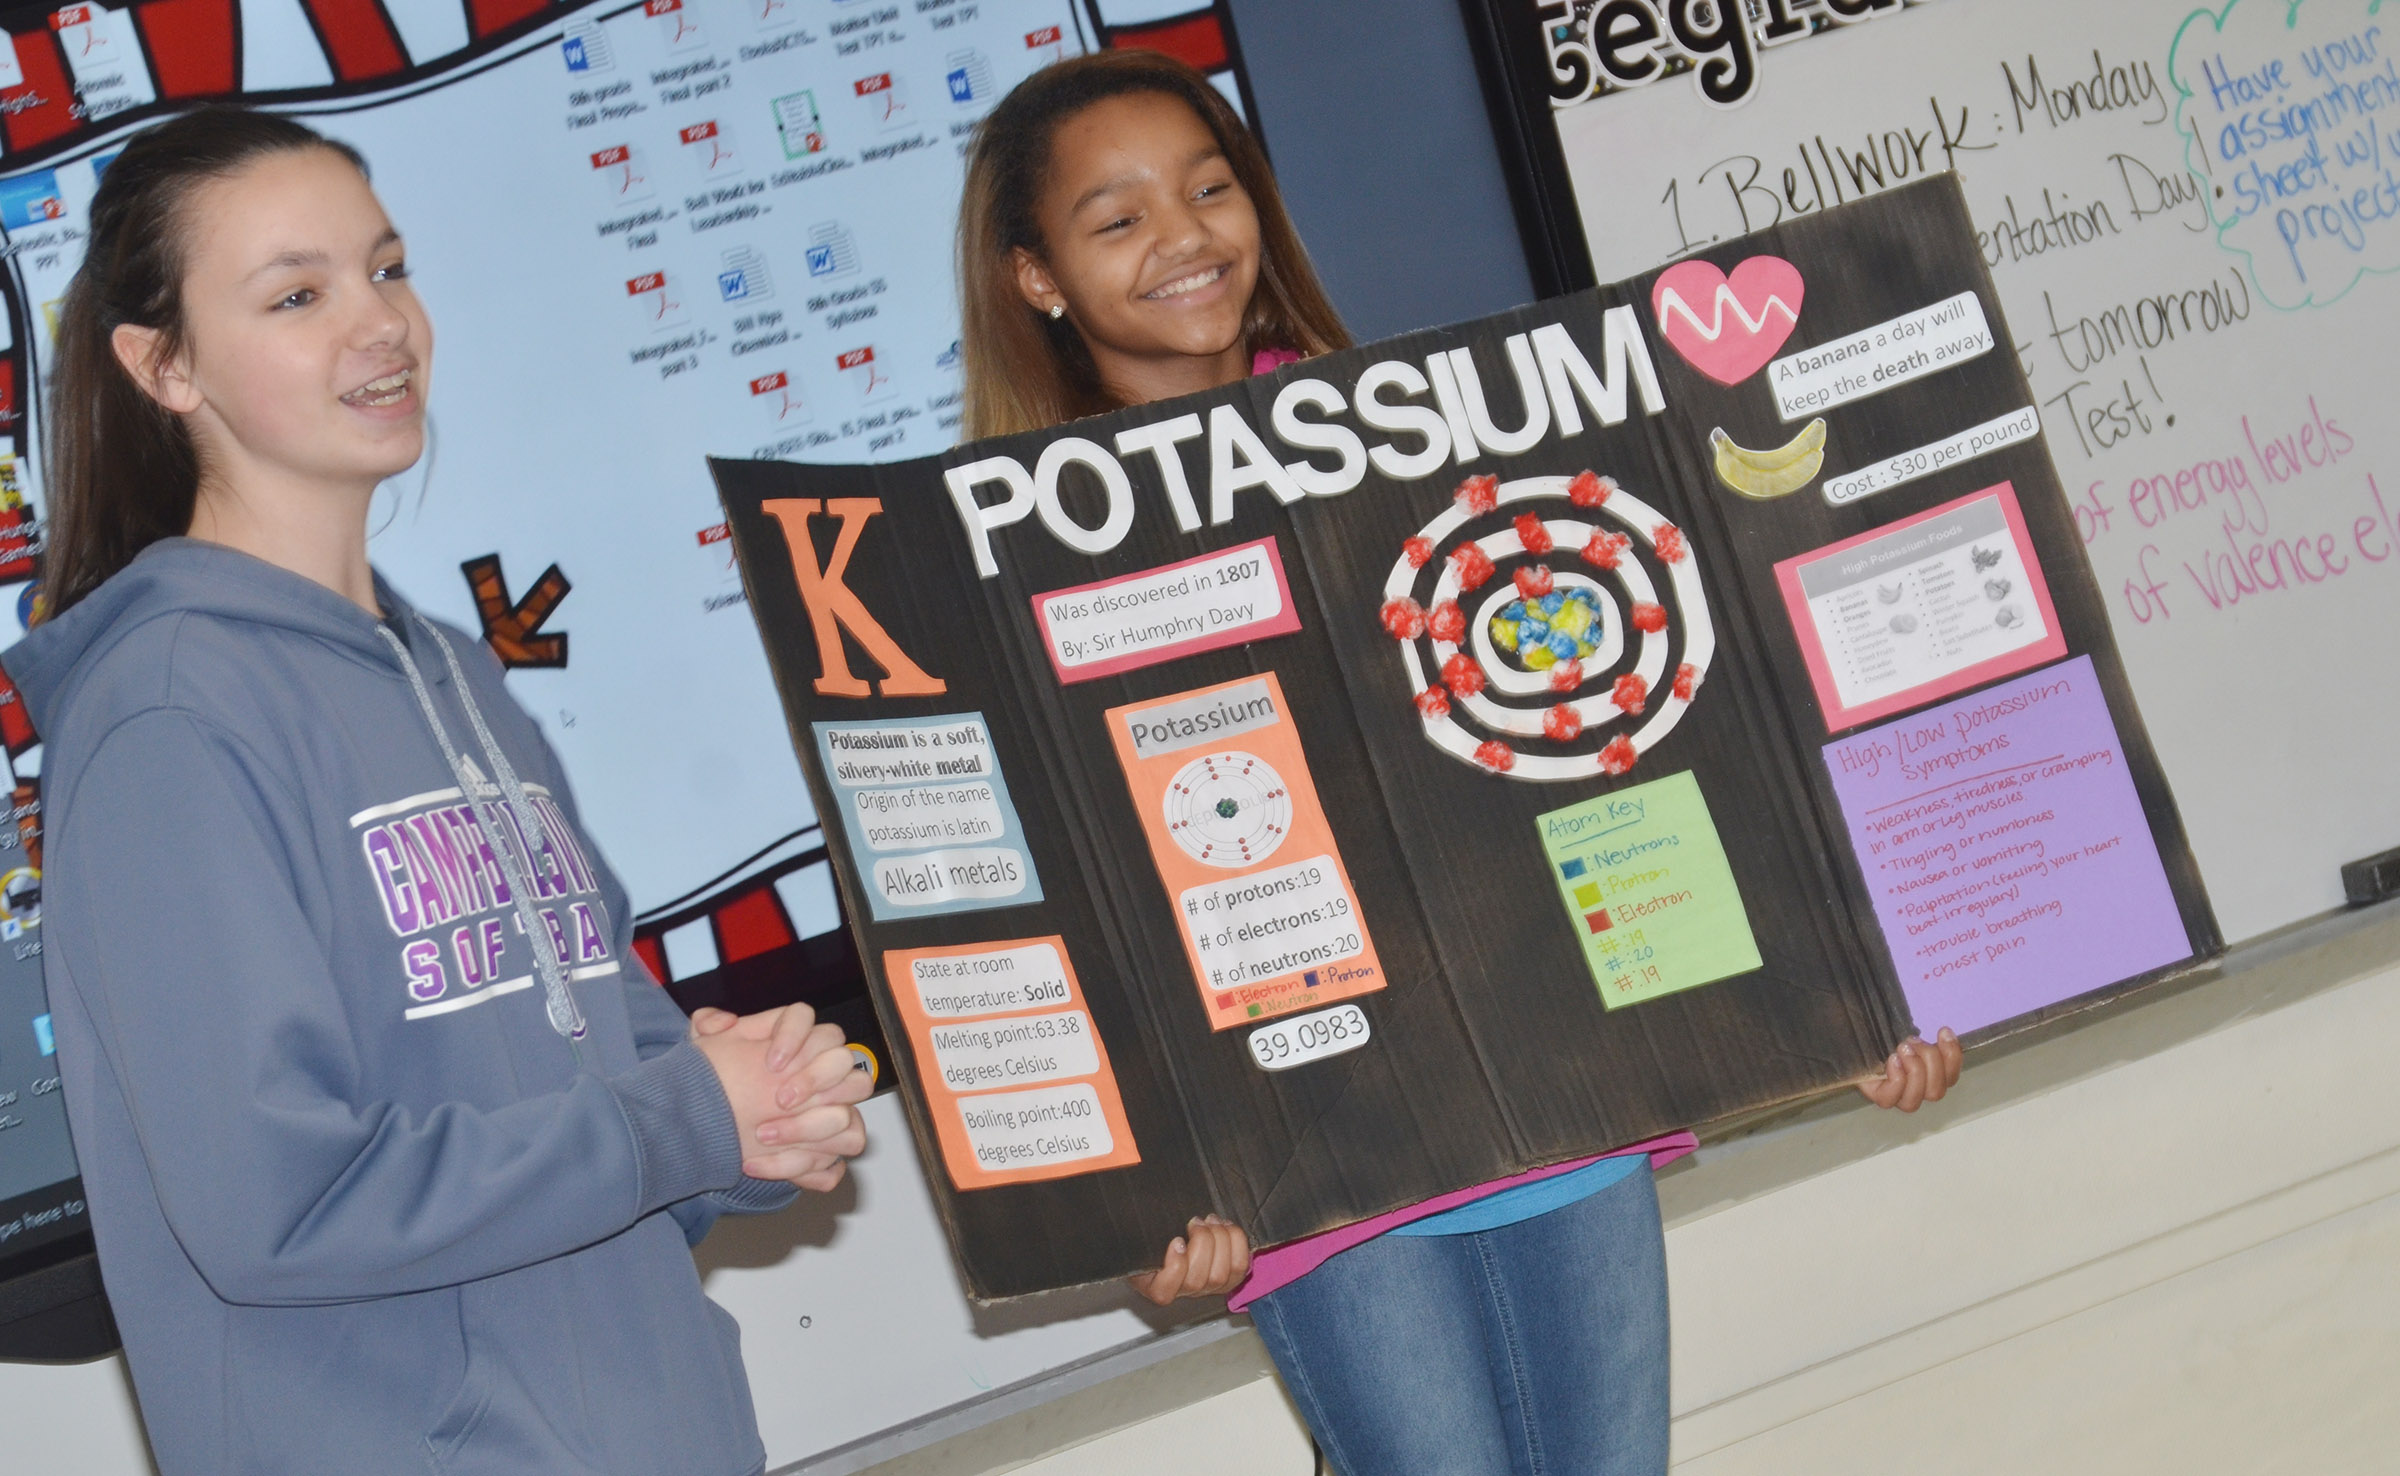 CMS eighth-grader Karley Morris, at left, presents about Potassium as classmate Alexis Thomas holds her poster.